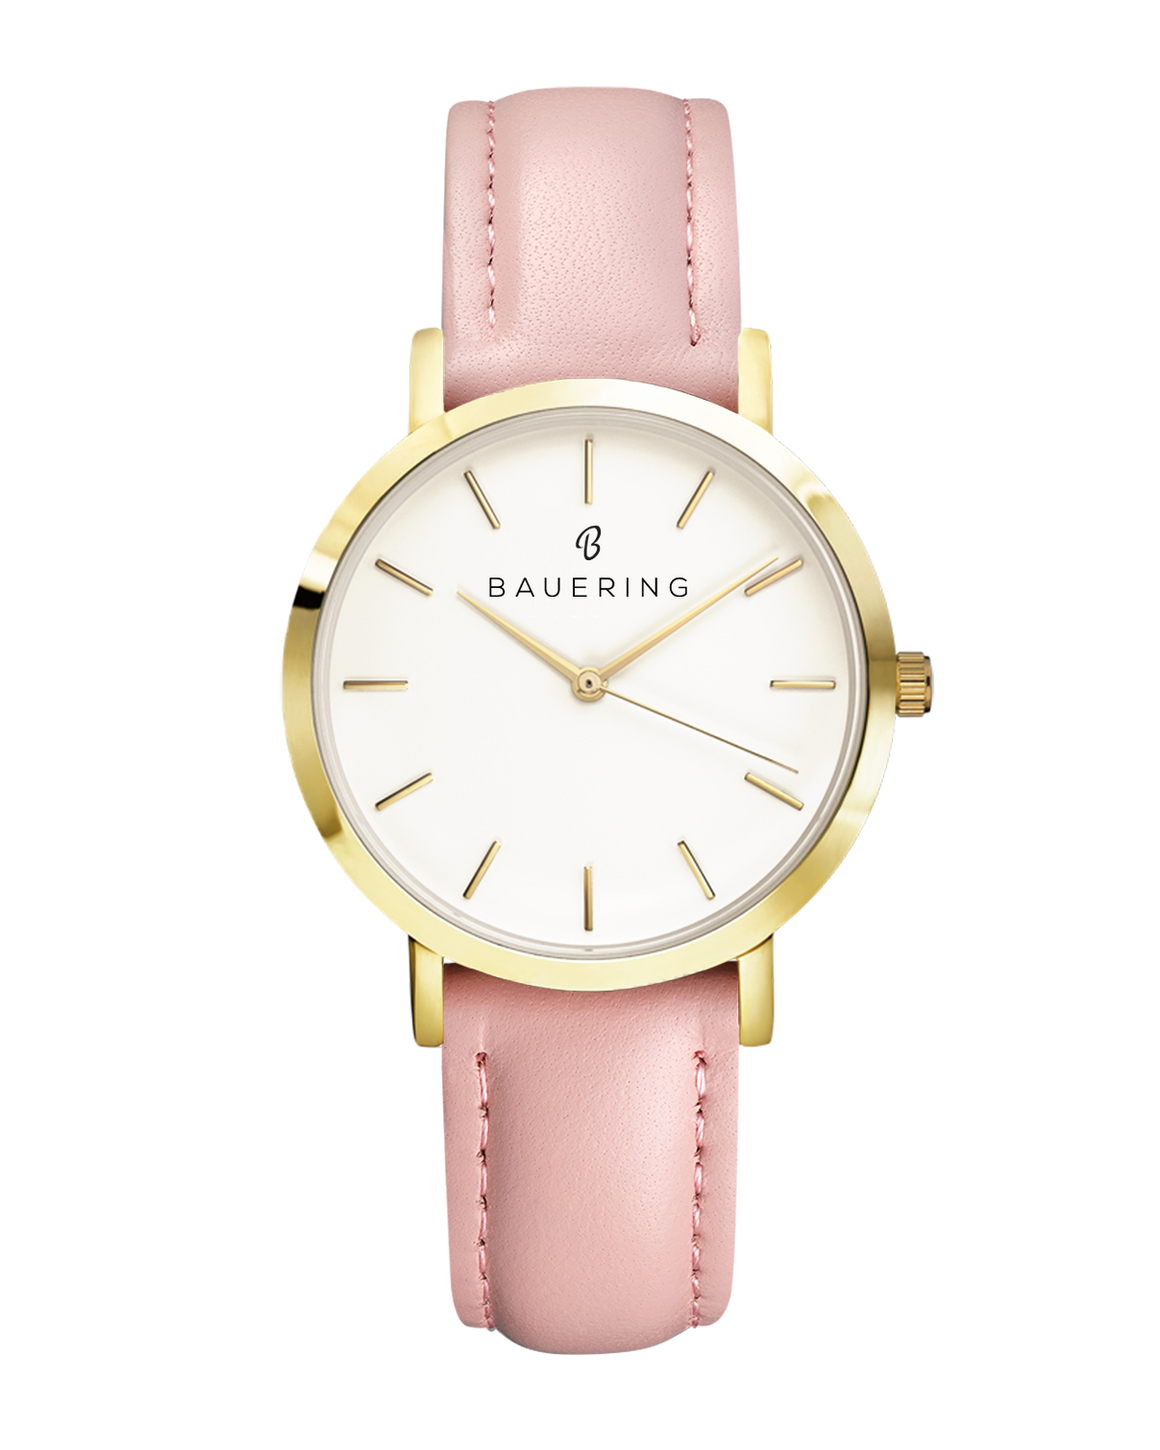 Classic stainless steel womens watch with genuine pink leather strap. Perfect accessory to match jewelry and accessories.